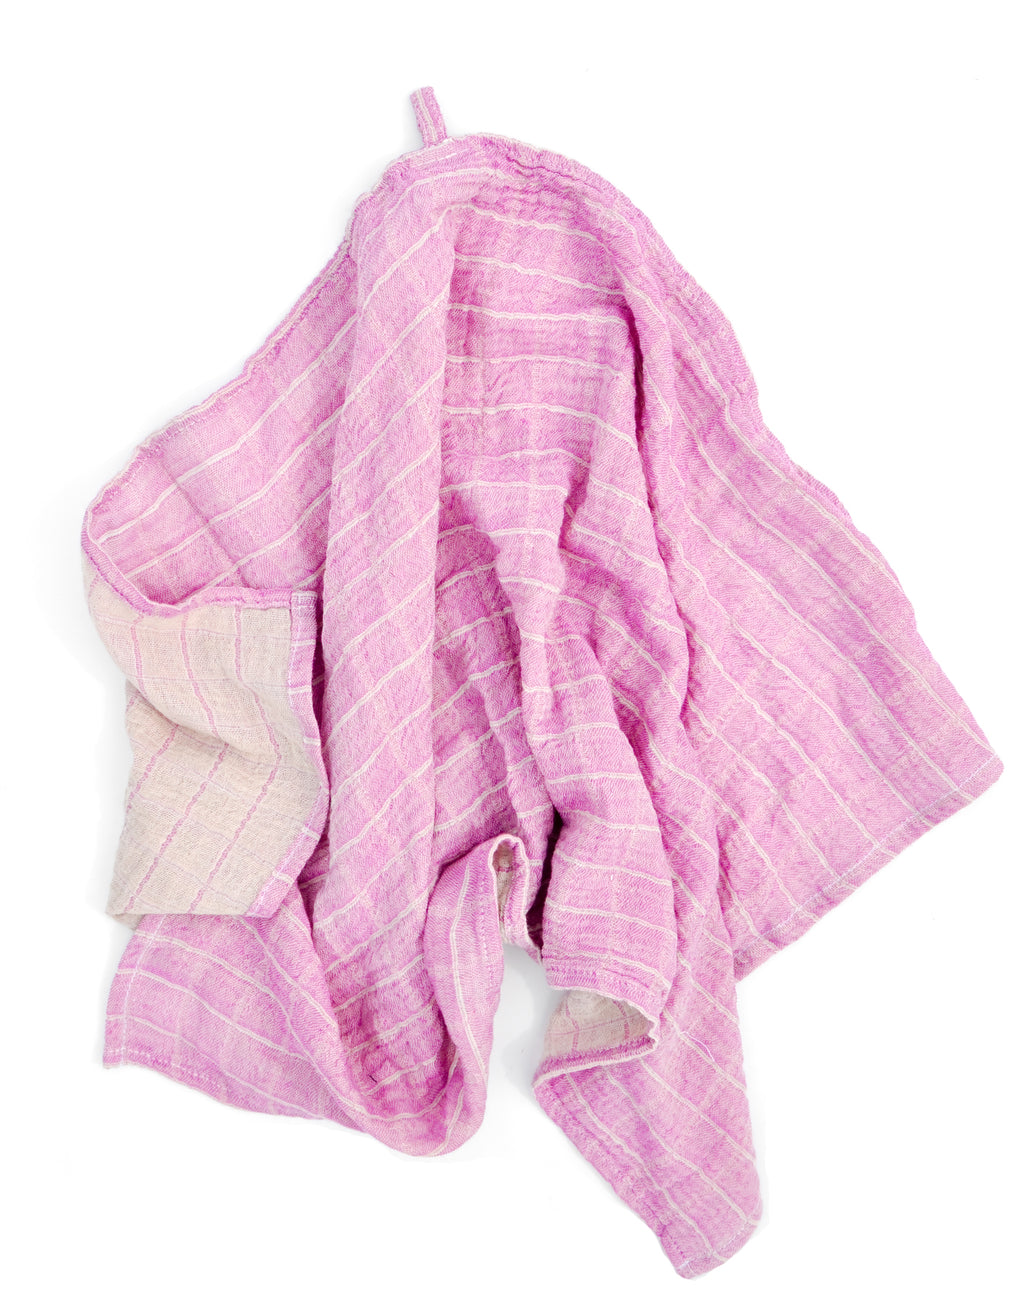 Orchid: Color Duo Hand Towel in Orchid - LEIF